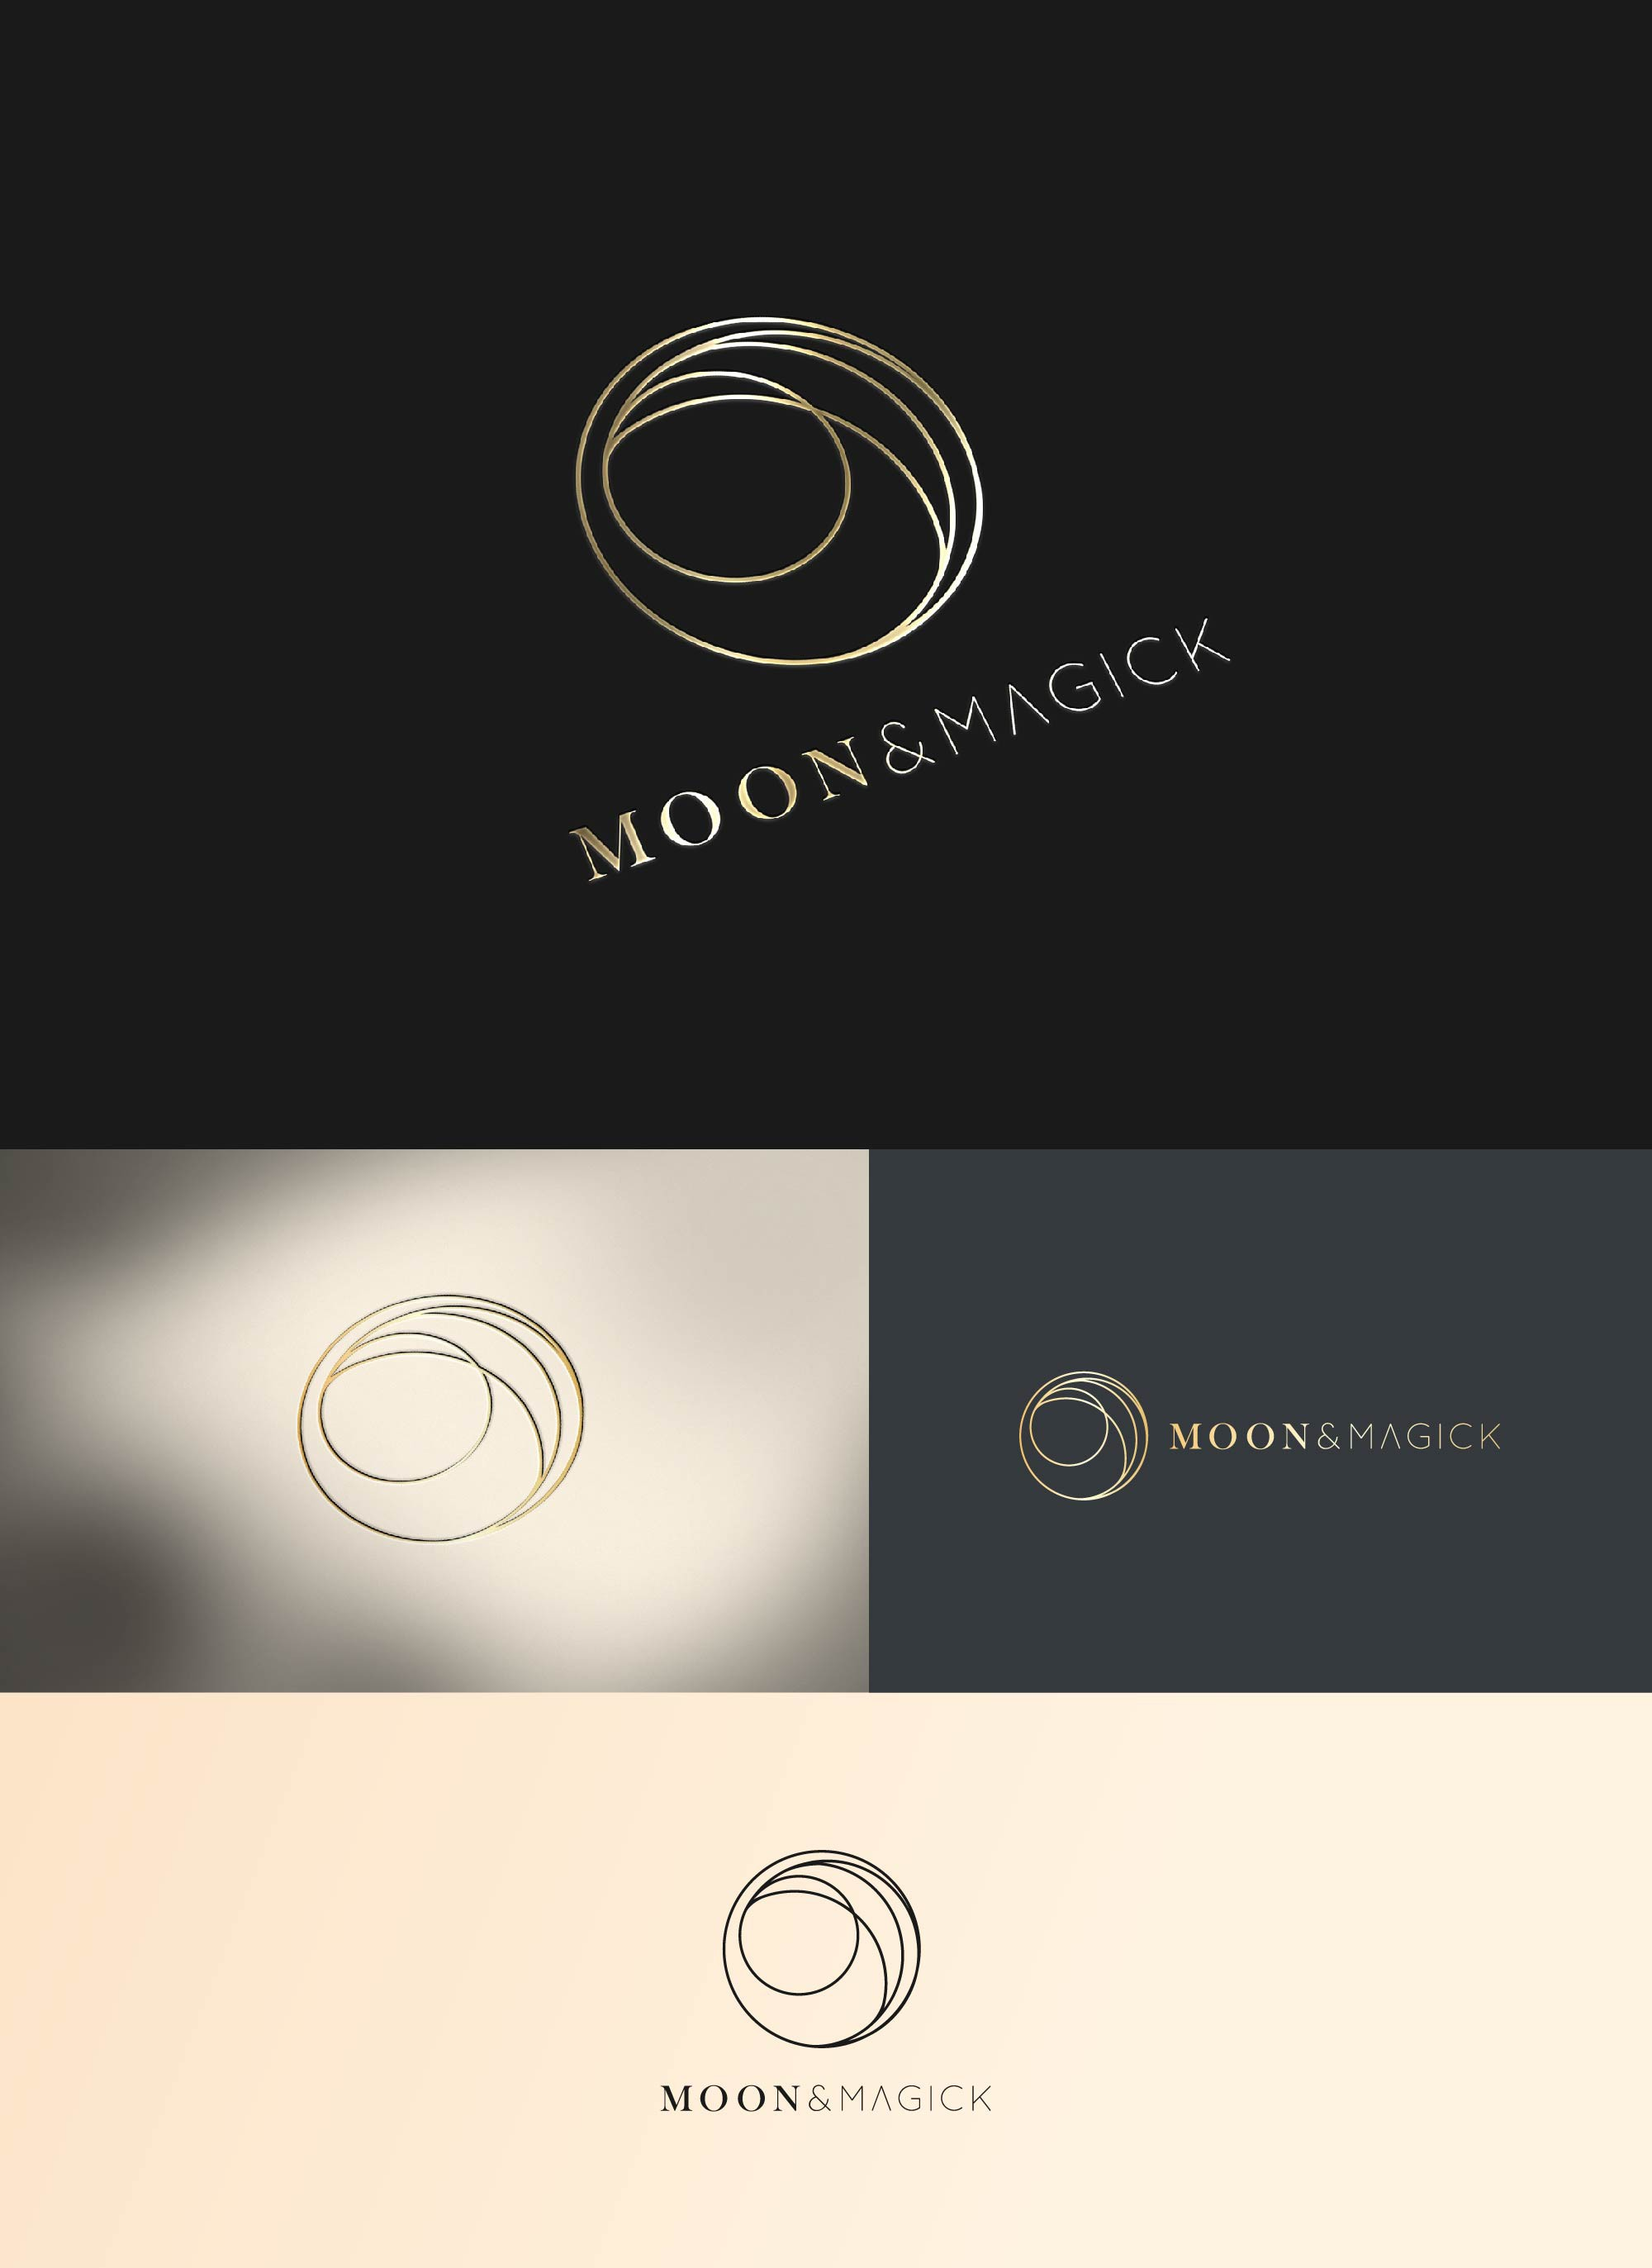 Moon & Magic - design a simple, clean & sophisticated logo